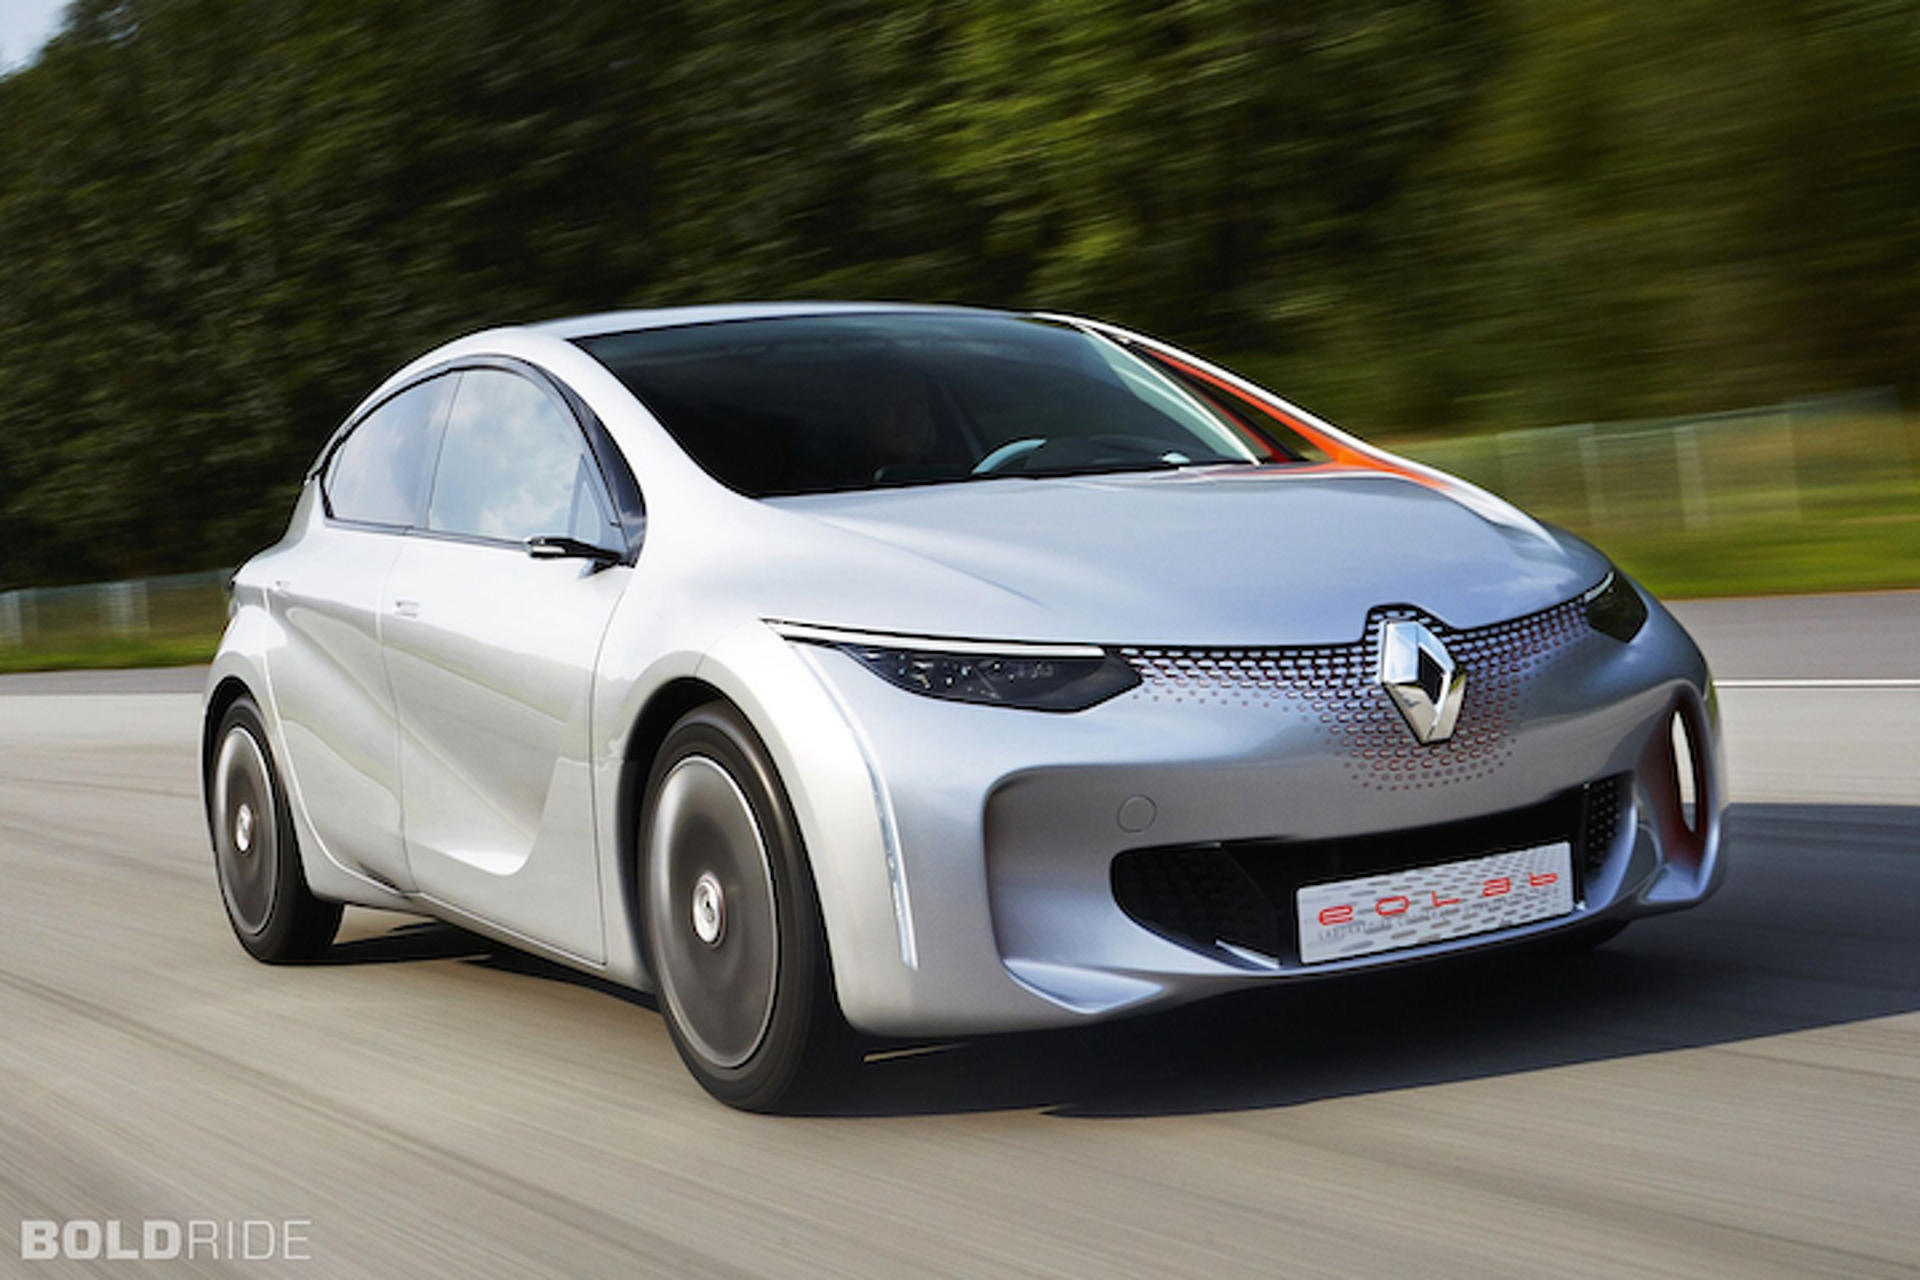 Renault Eolab Hatchback Gets 235 MPG, And Looks Good Doing It